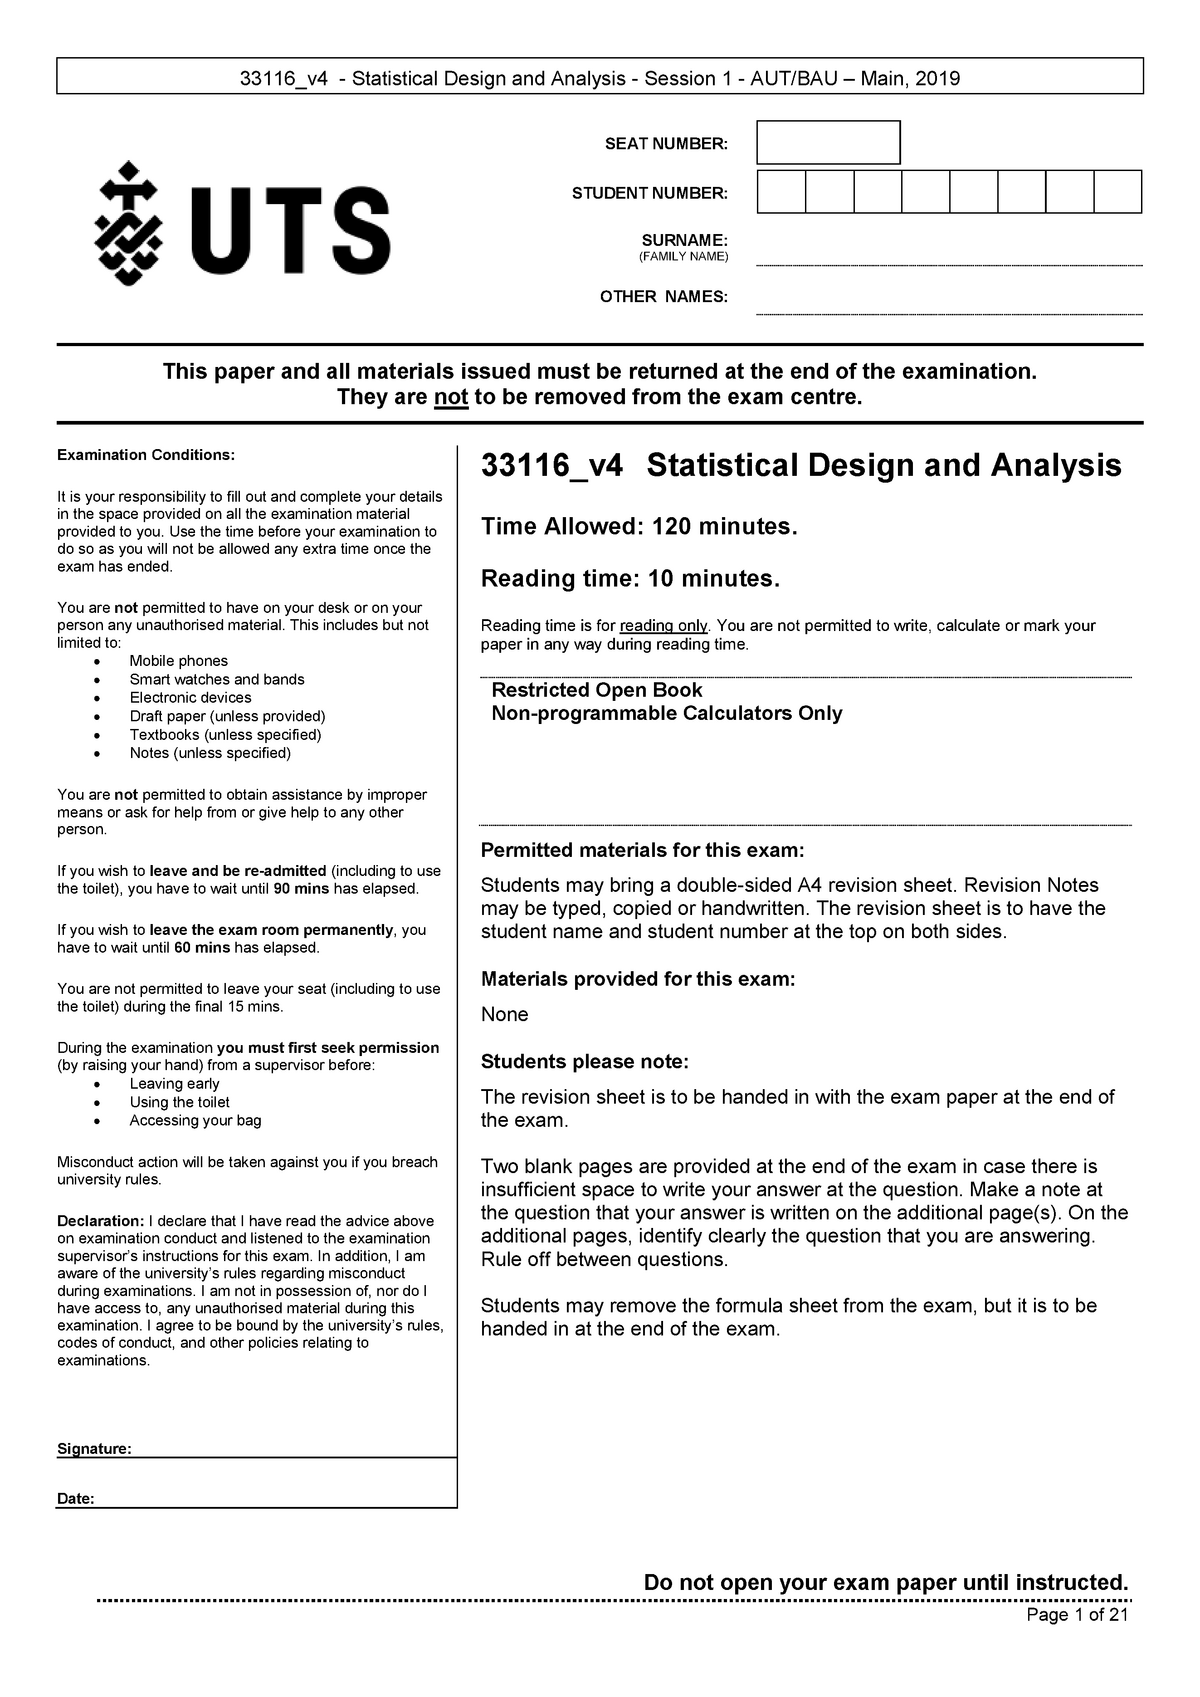 Statistical Design and Analysis  2019 AU Main v7 Front and Back